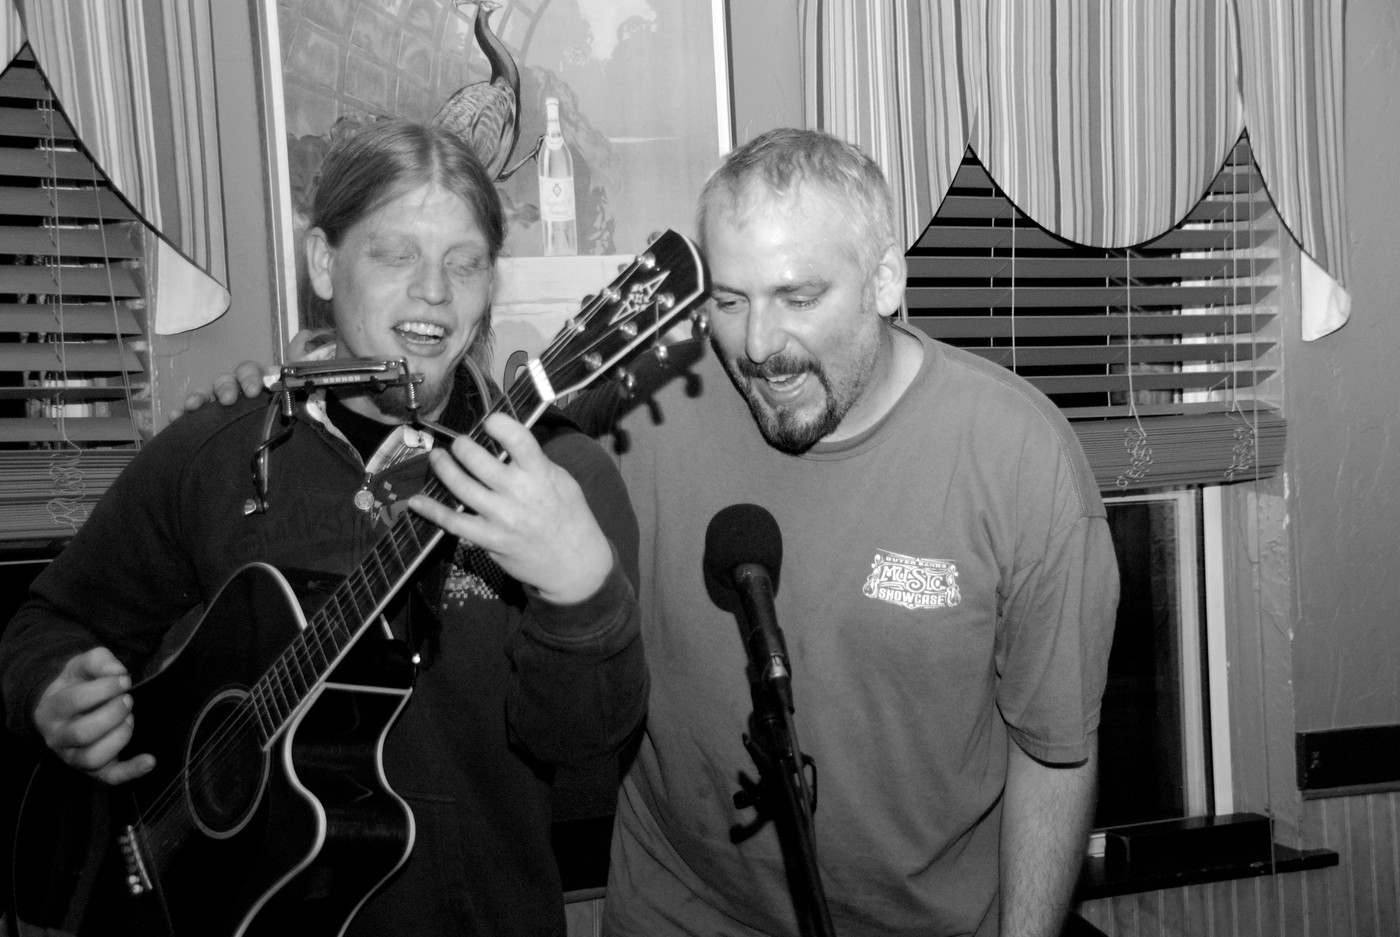 958OpenMic@Kelly's&BC@Chili's 192